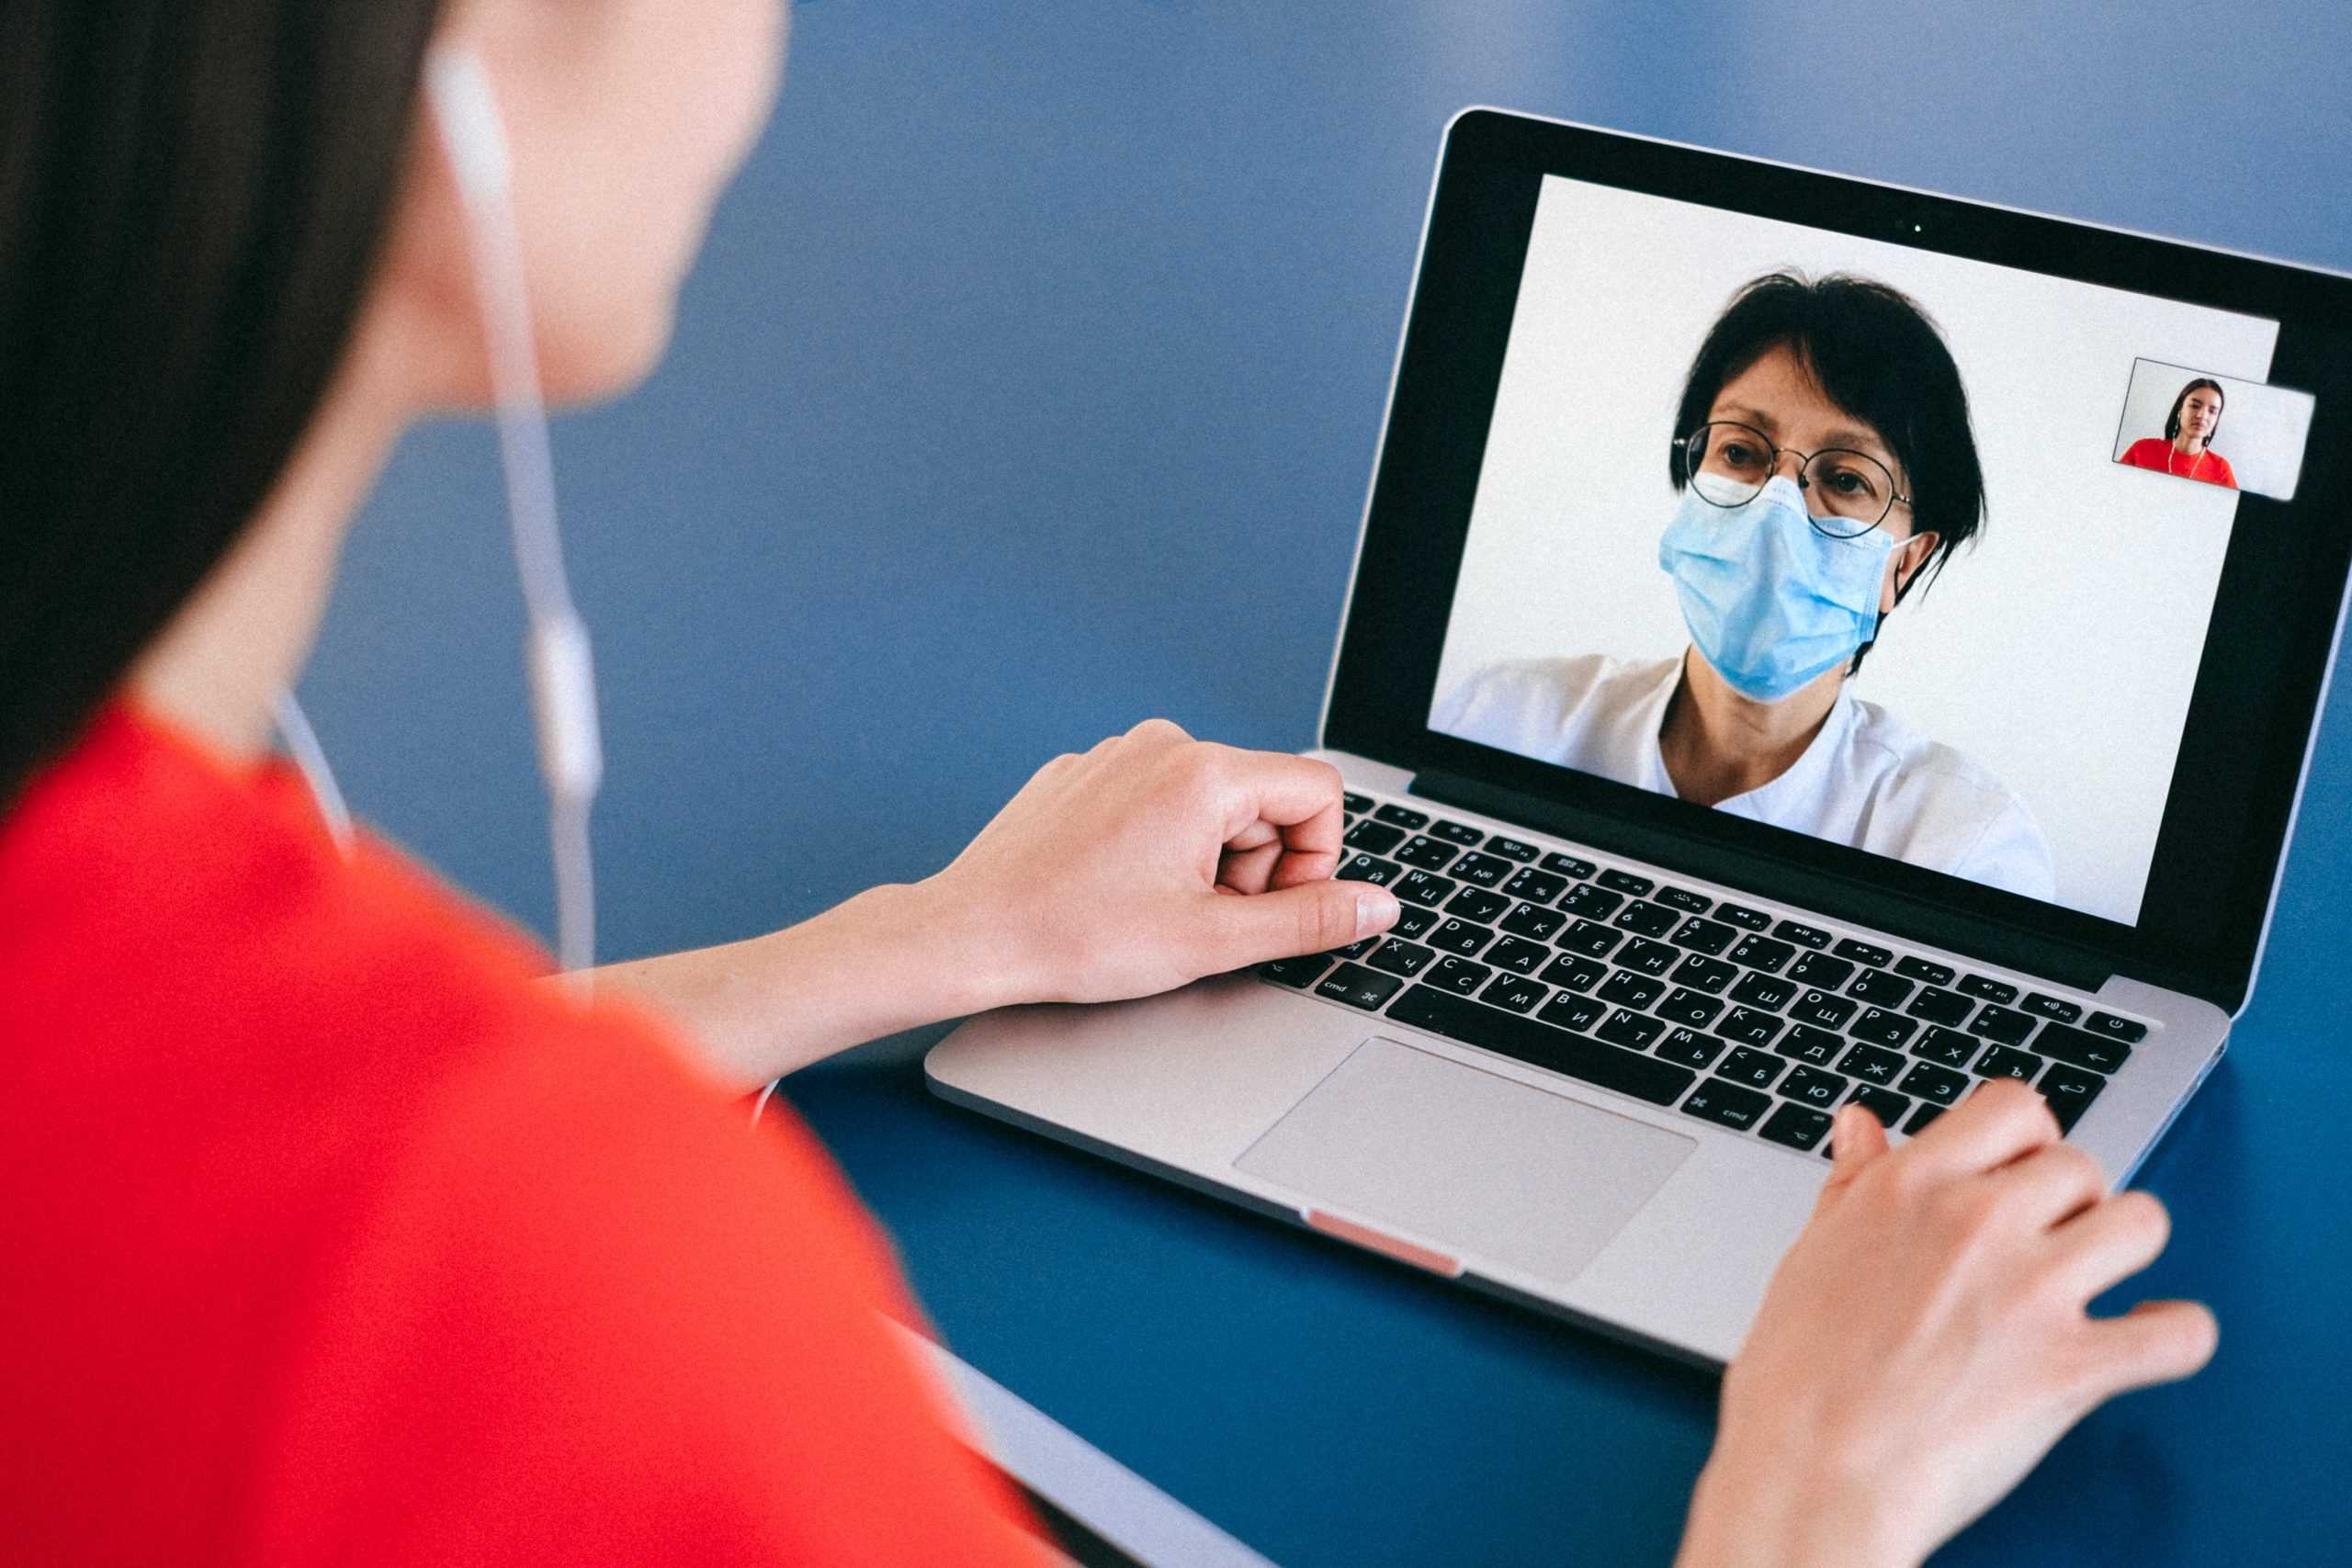 a woman with earphones in a video call with a doctor wearing a mask